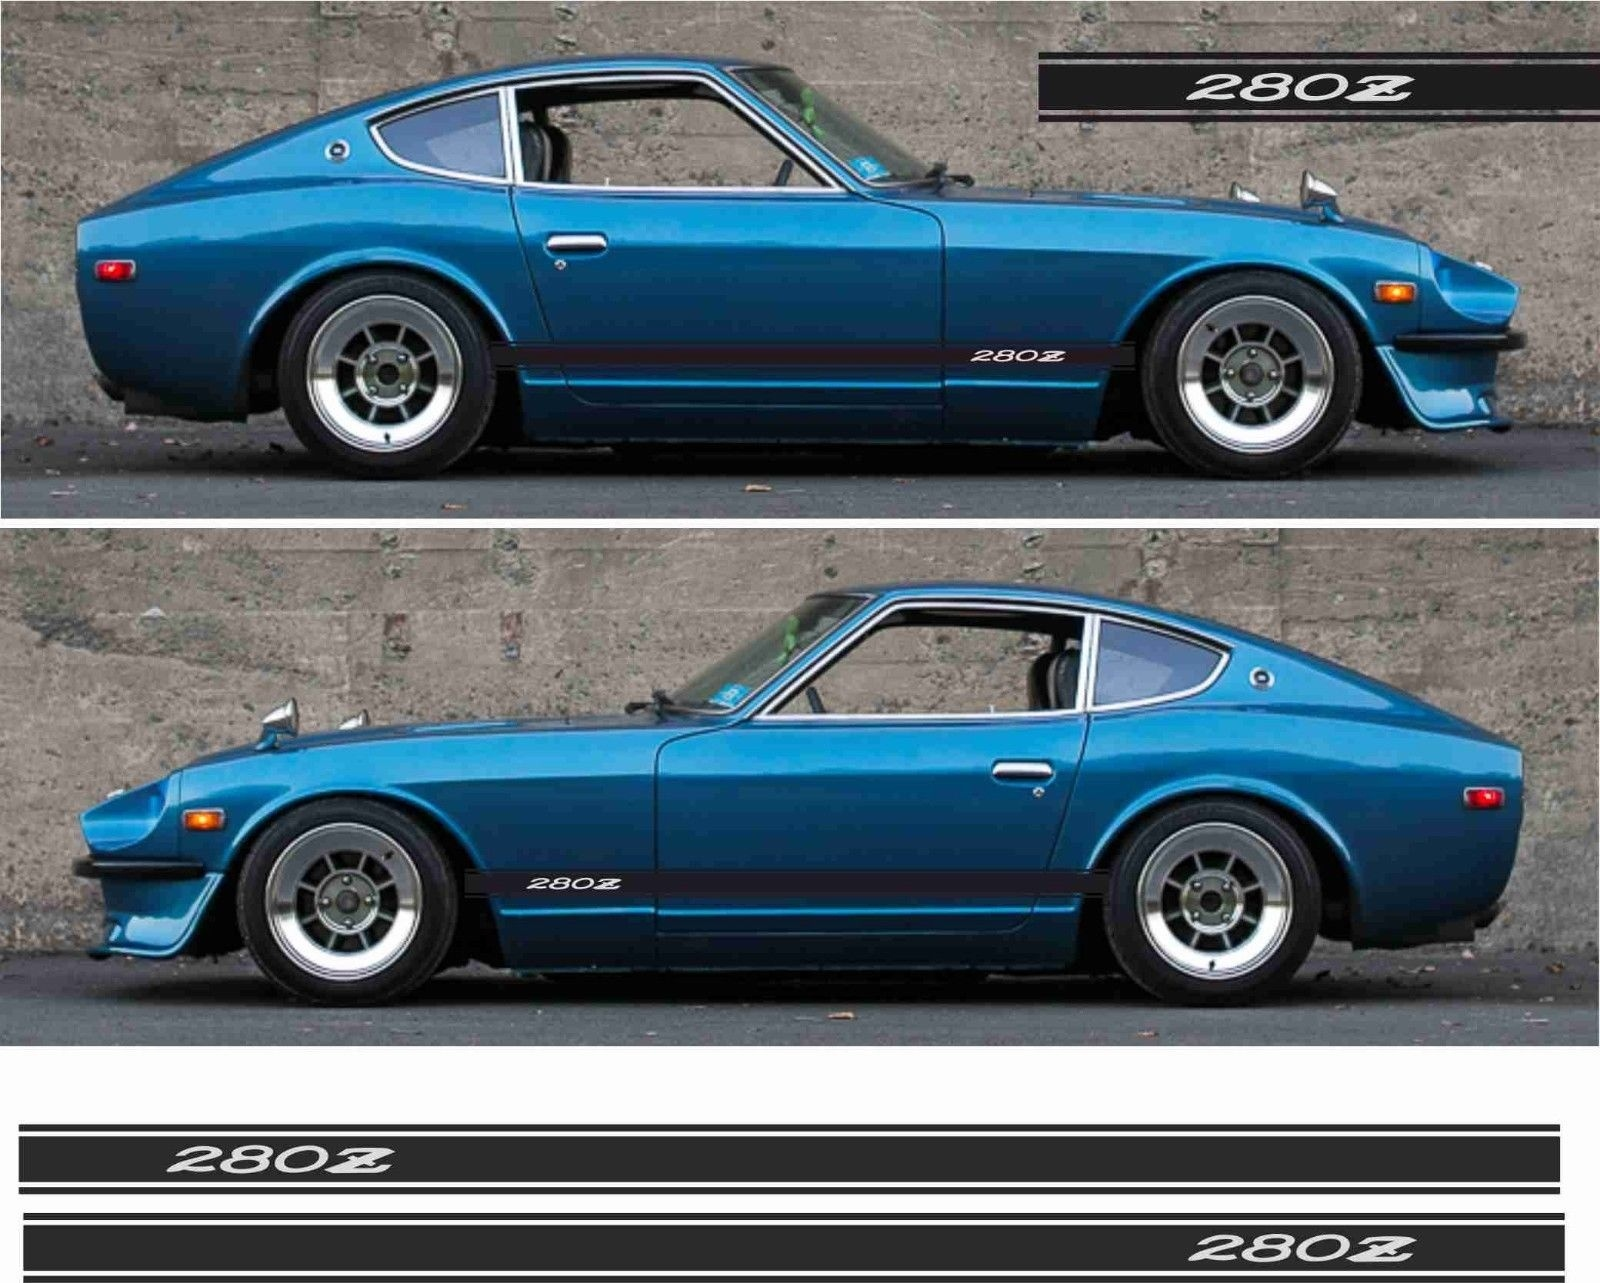 Nissan Fairlady Z >> Us 24 99 For 2pcs Pair Datsun 280z Nissan Fairlady Z Side Stripes Decals Stickers S130 Any Colour In Car Stickers From Automobiles Motorcycles